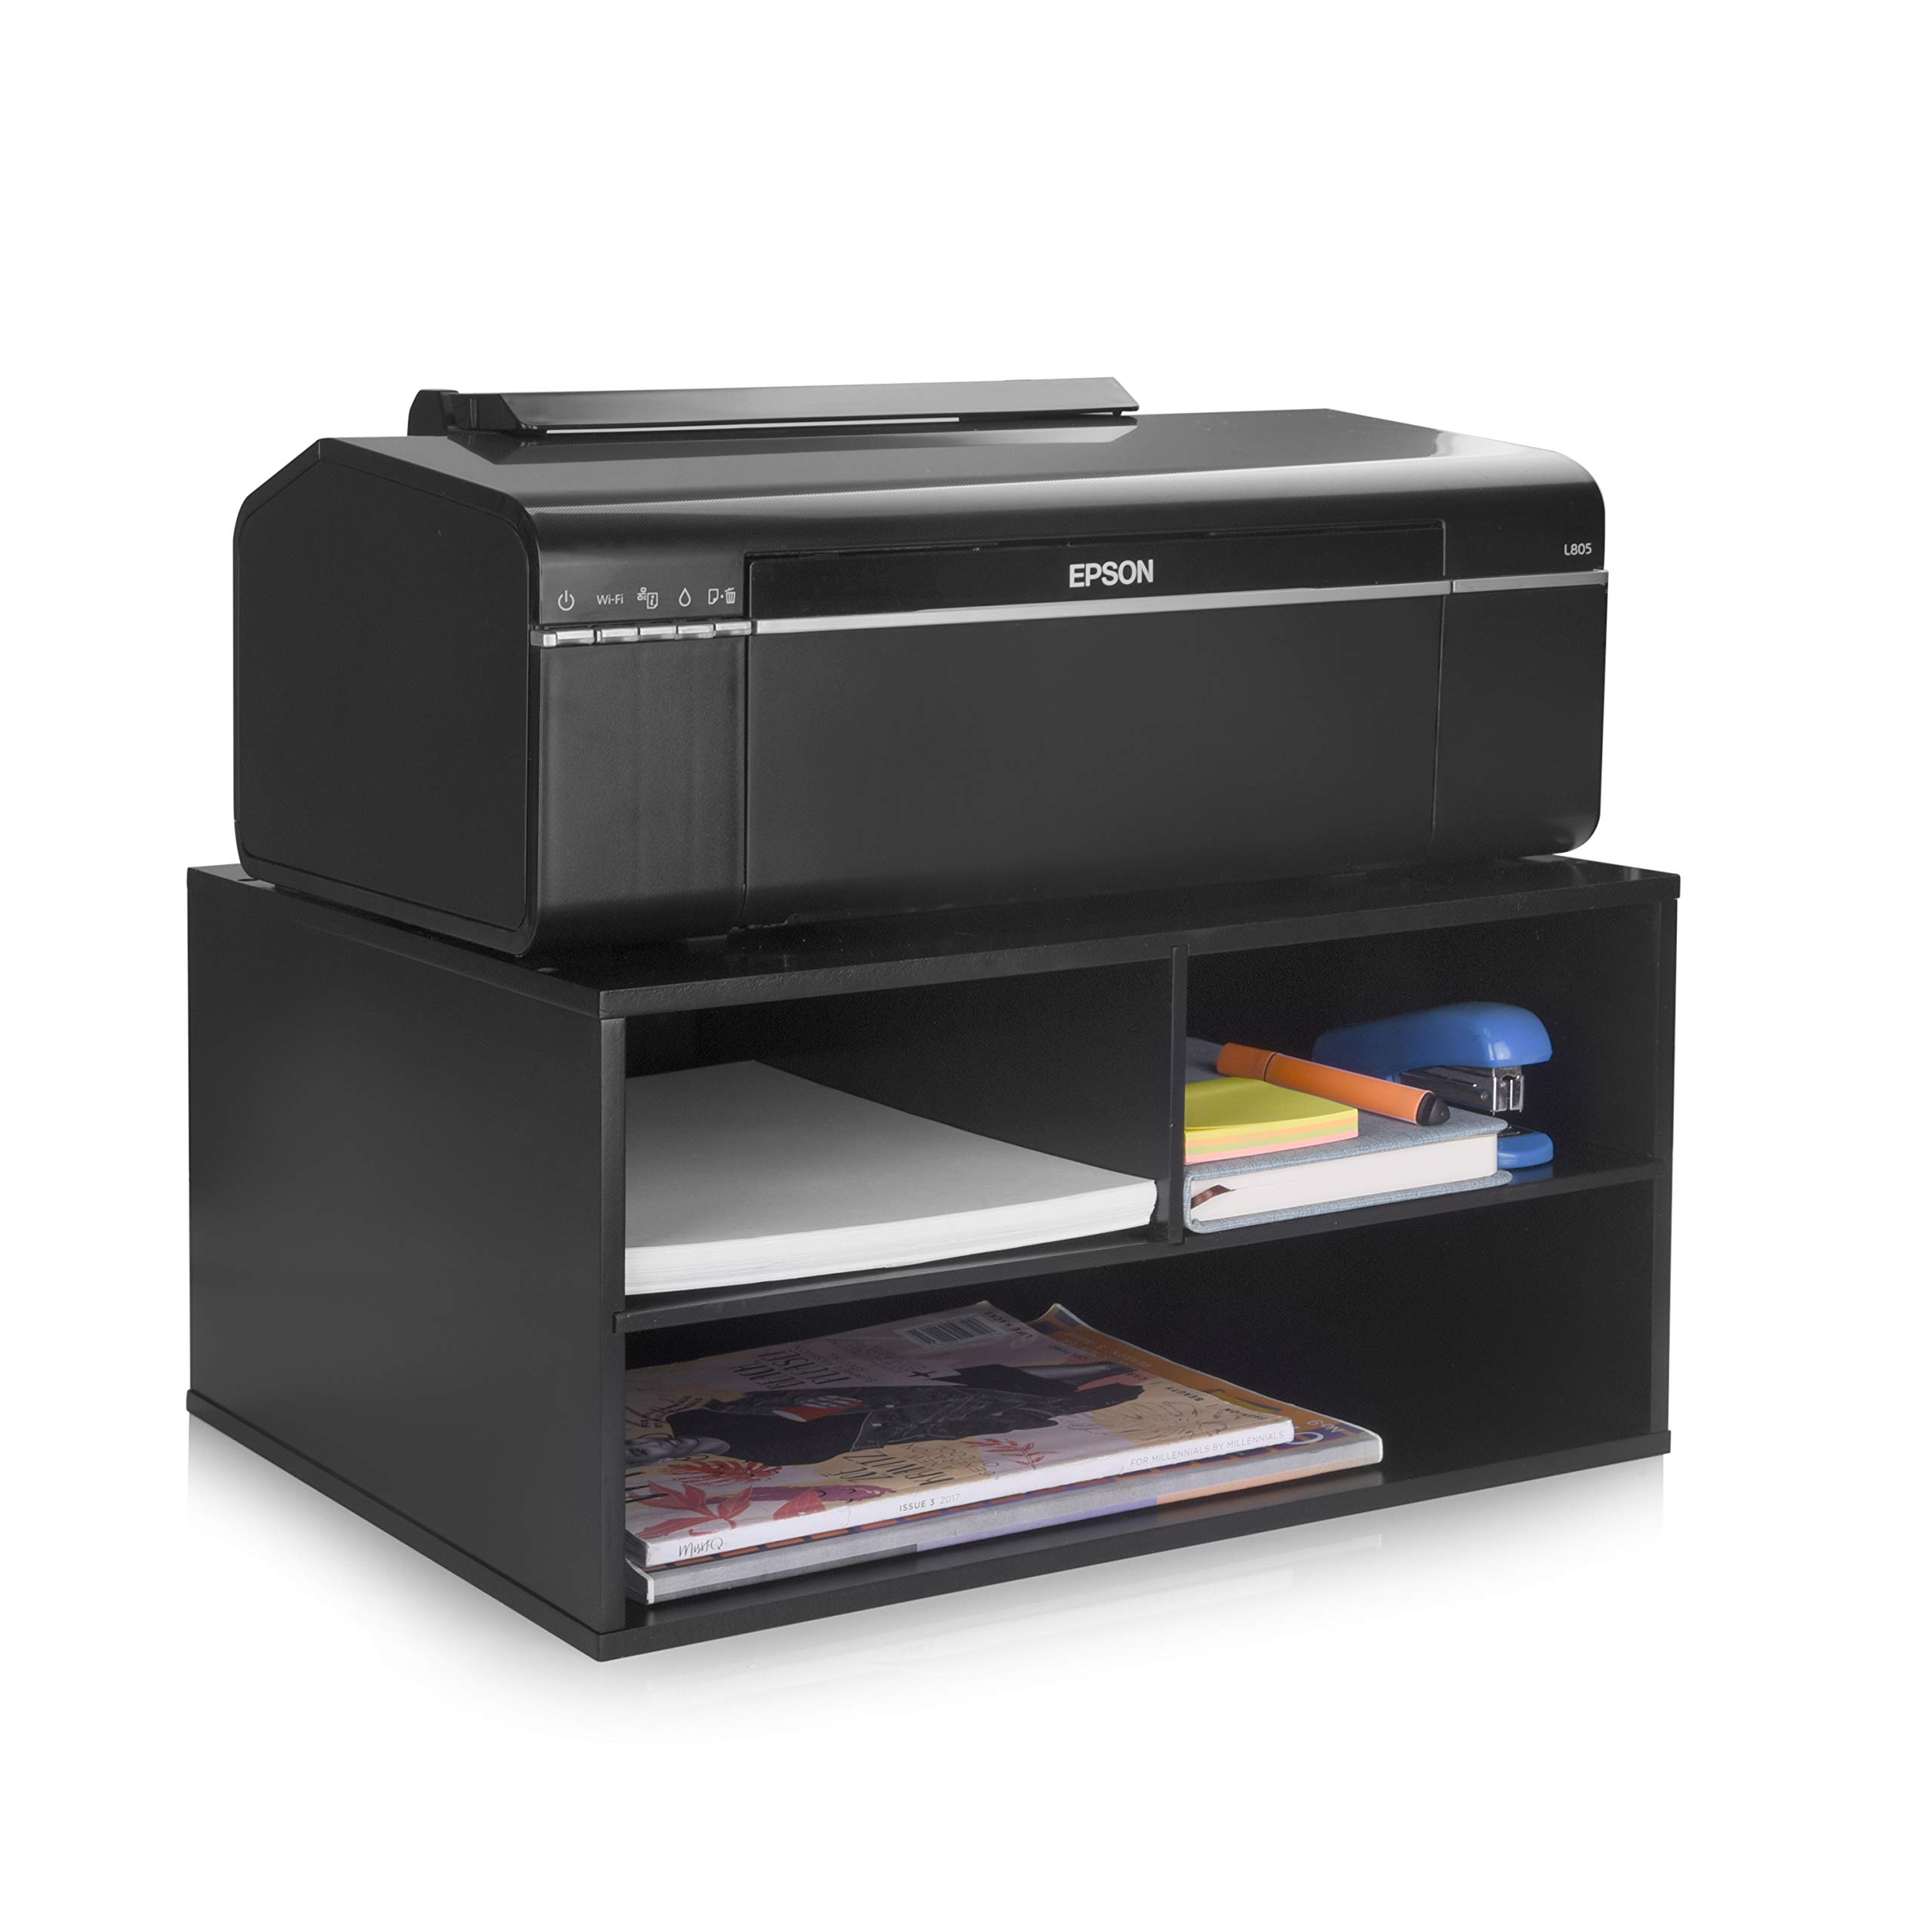 eMerit Wood Two-Tier Printer Fax Stand Shelf Riser Paper Organizer for Home Office Suitable for US Standard Paper,Black by EMERIT